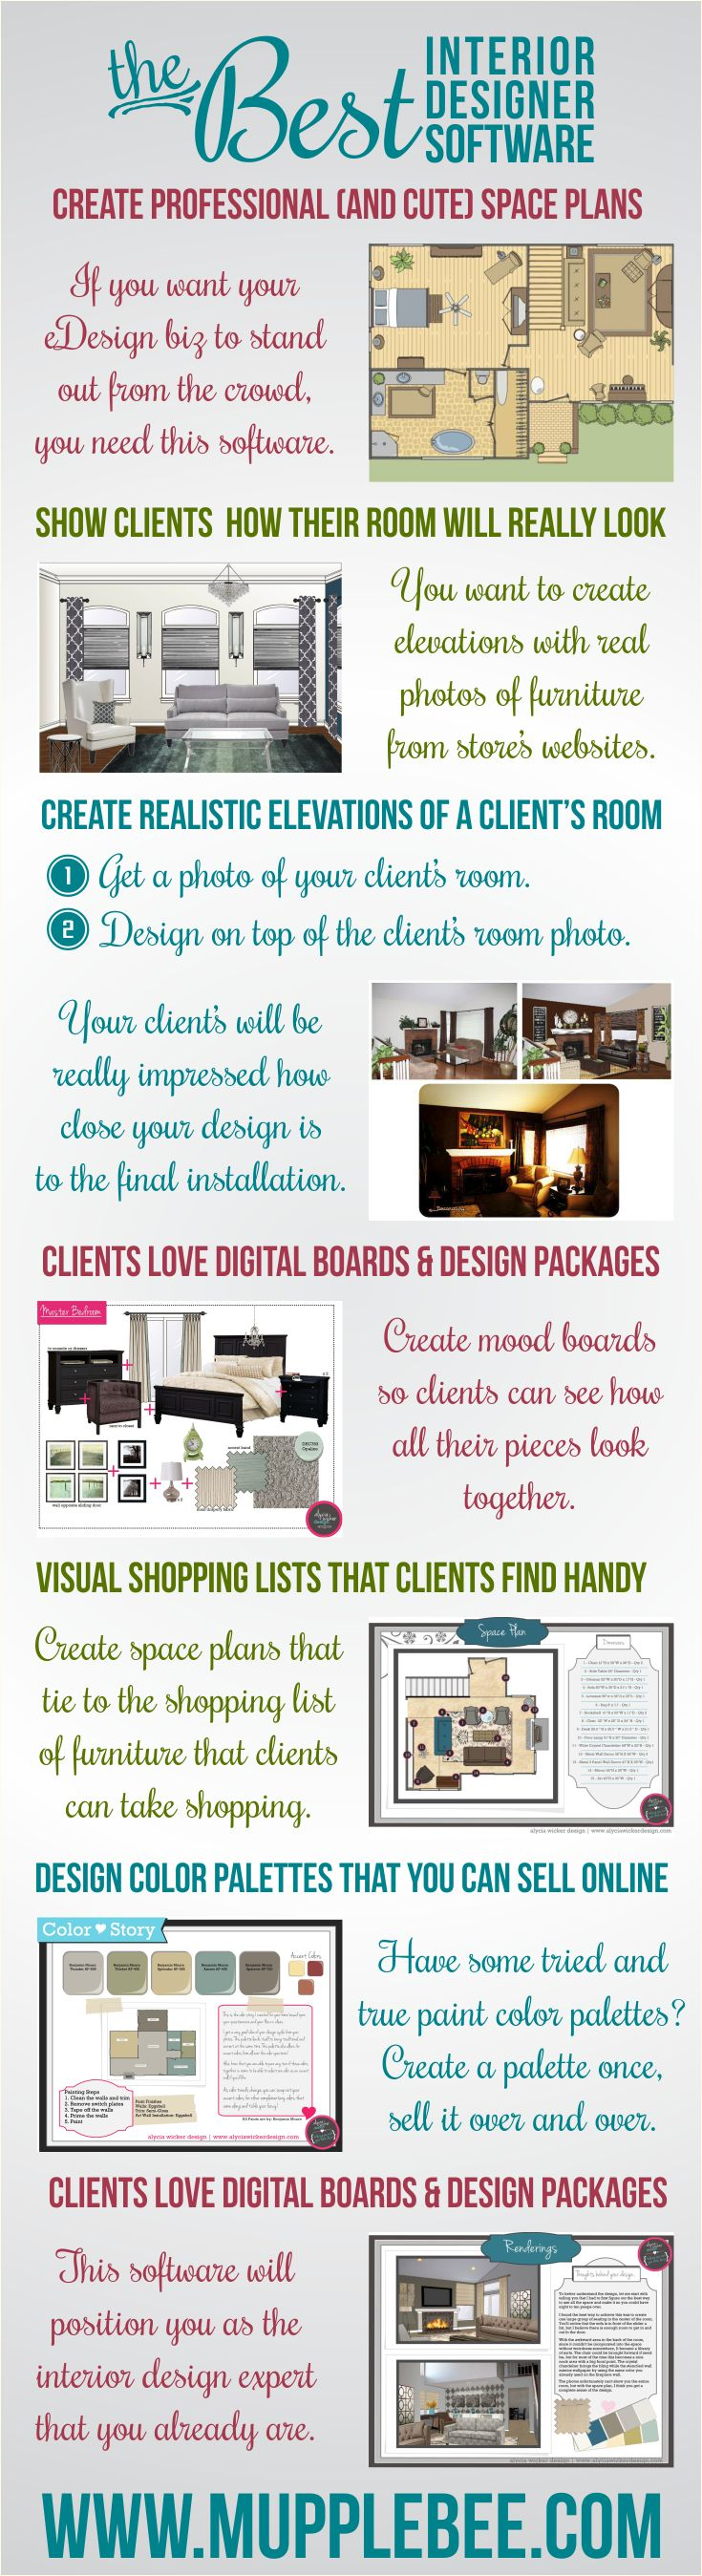 One Of The Best Interior Design Software Programs That You Can Use For Your EDesign